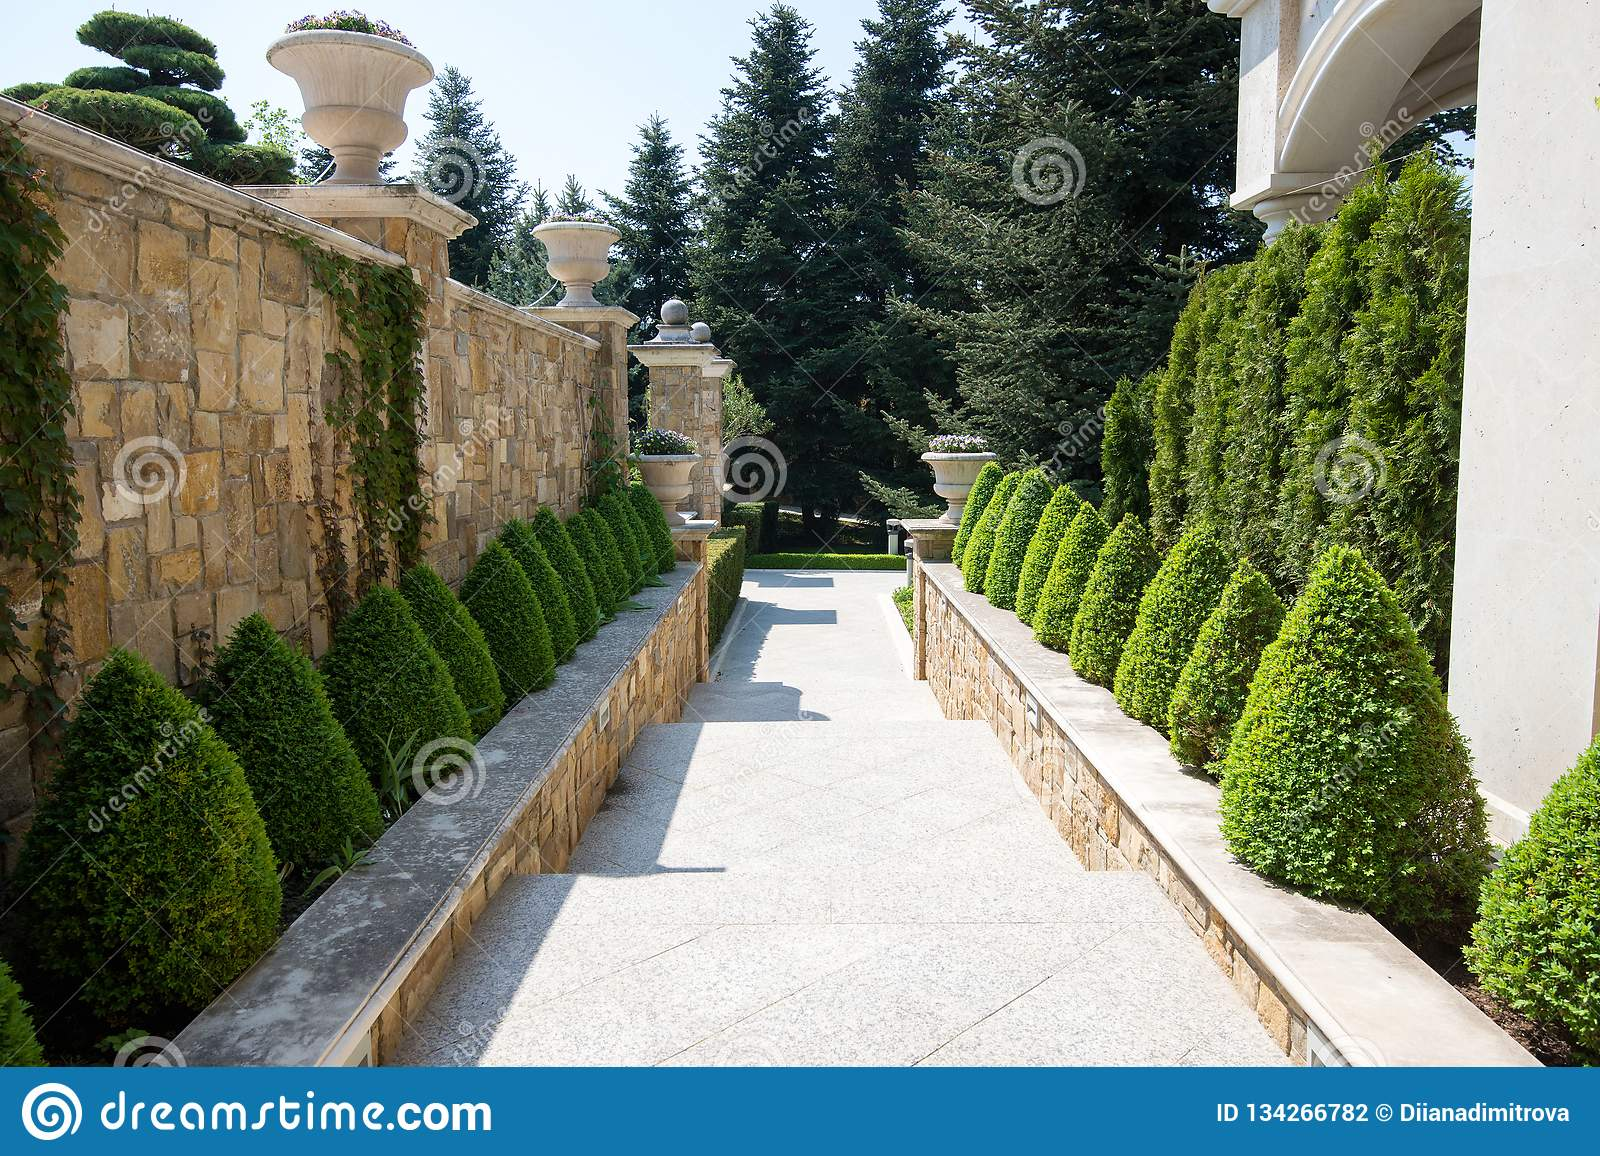 Modern Garden Design With Box Trees Bushes Stock Photo Image Of